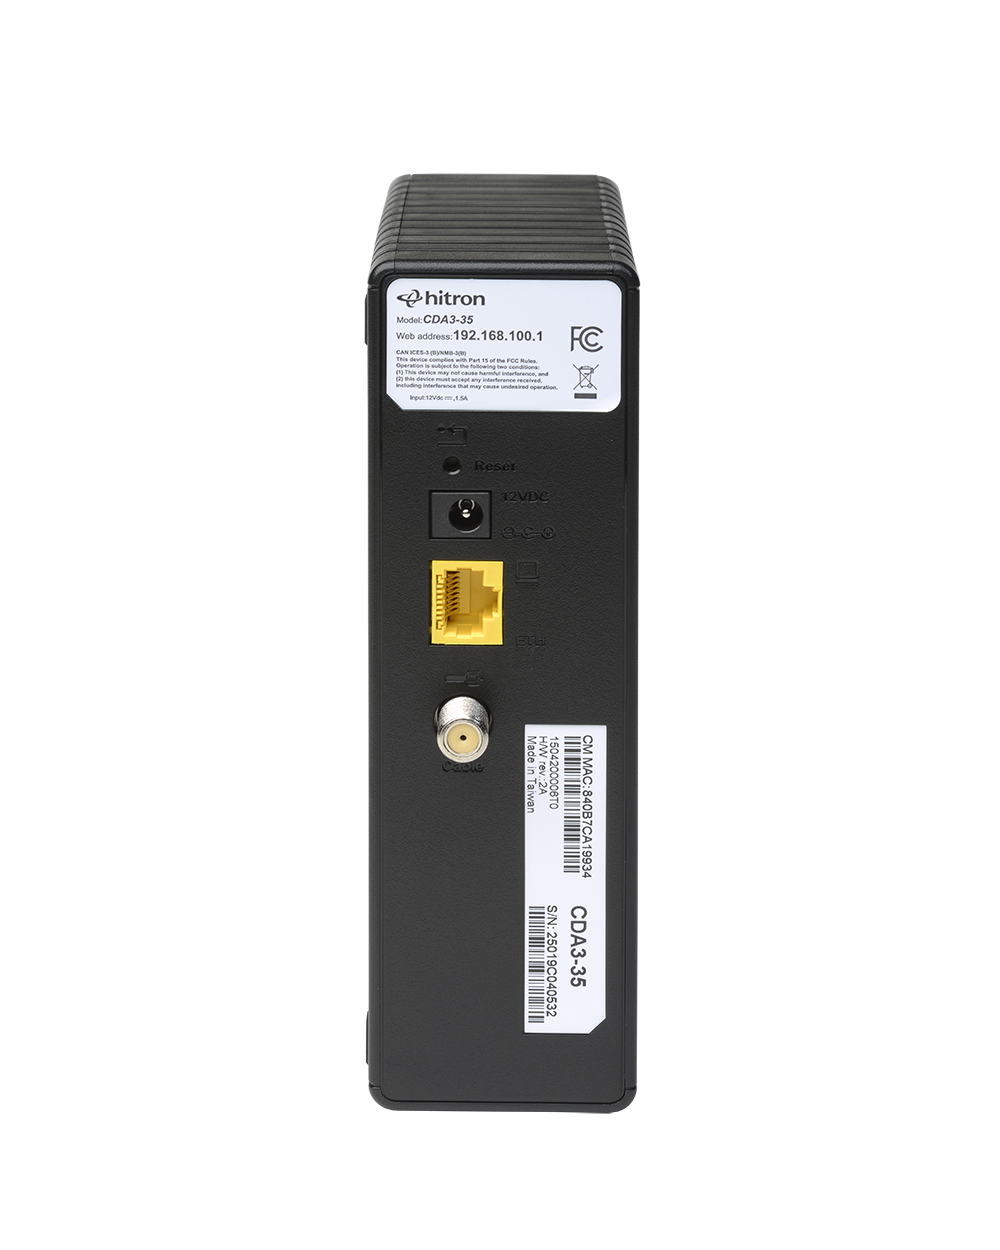 DOCSIS 3.0 Cable Modem from Hitron - CDA3-35